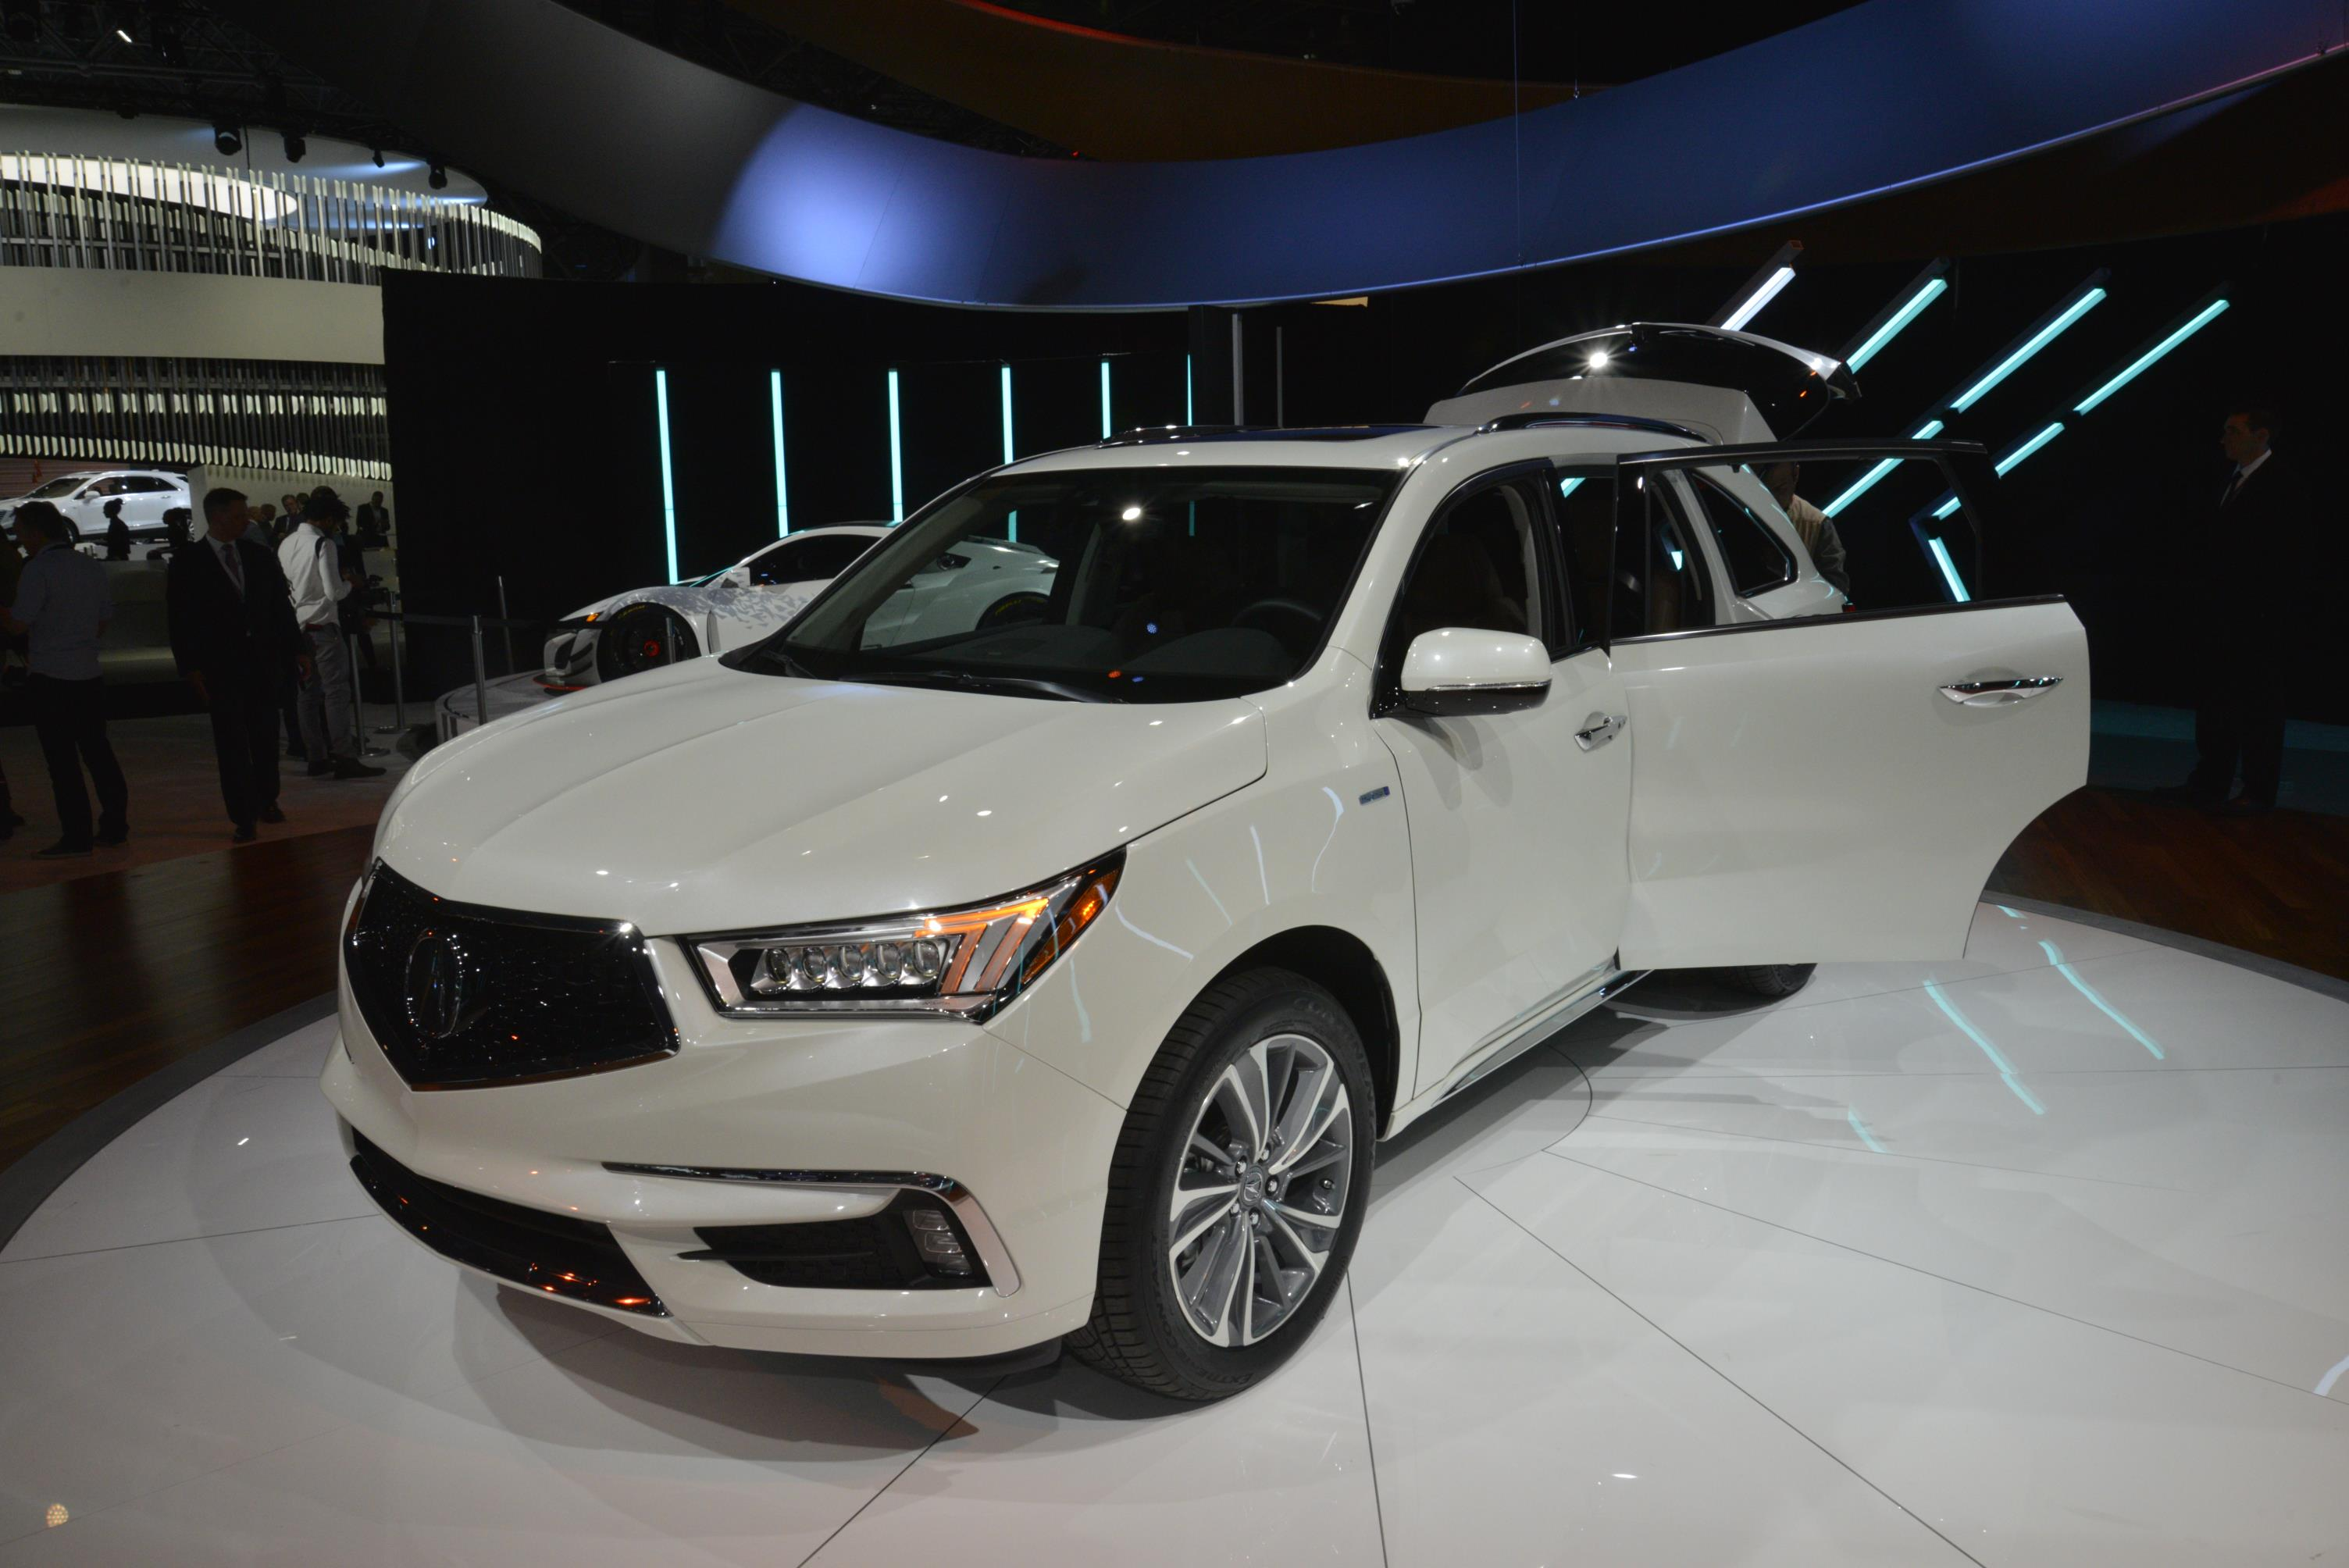 2017 Acura MDX Priced From $43,950, Sport Hybrid SH-AWD ...